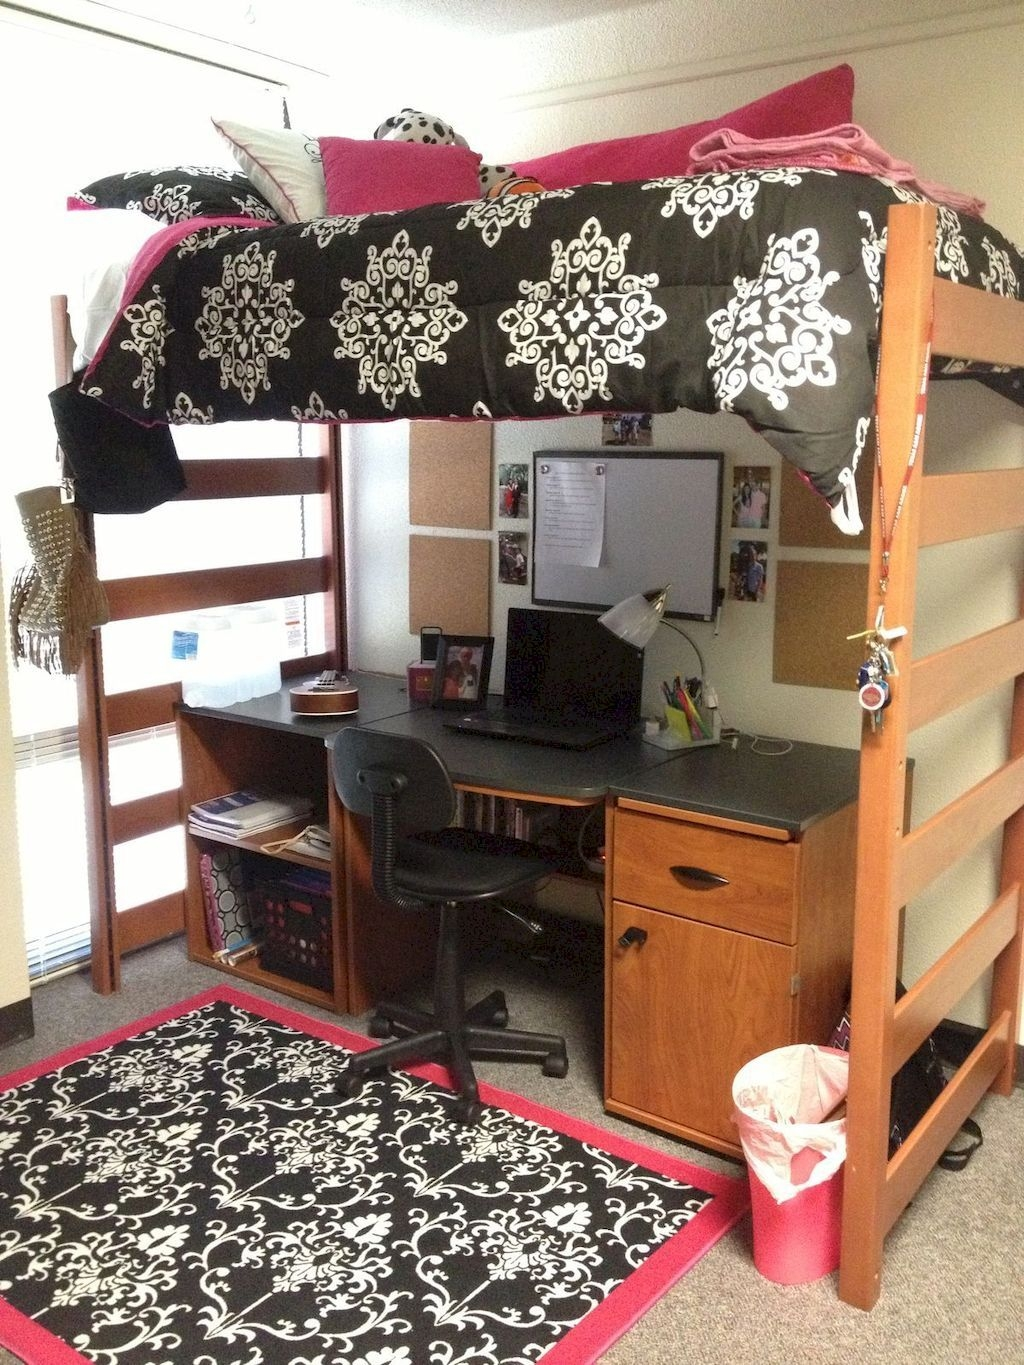 Beauteous Dorm Decorating Ideas for Girls On Stunning Pin On Home and Interior Designs On Dorm Decorating Ideas for Girls